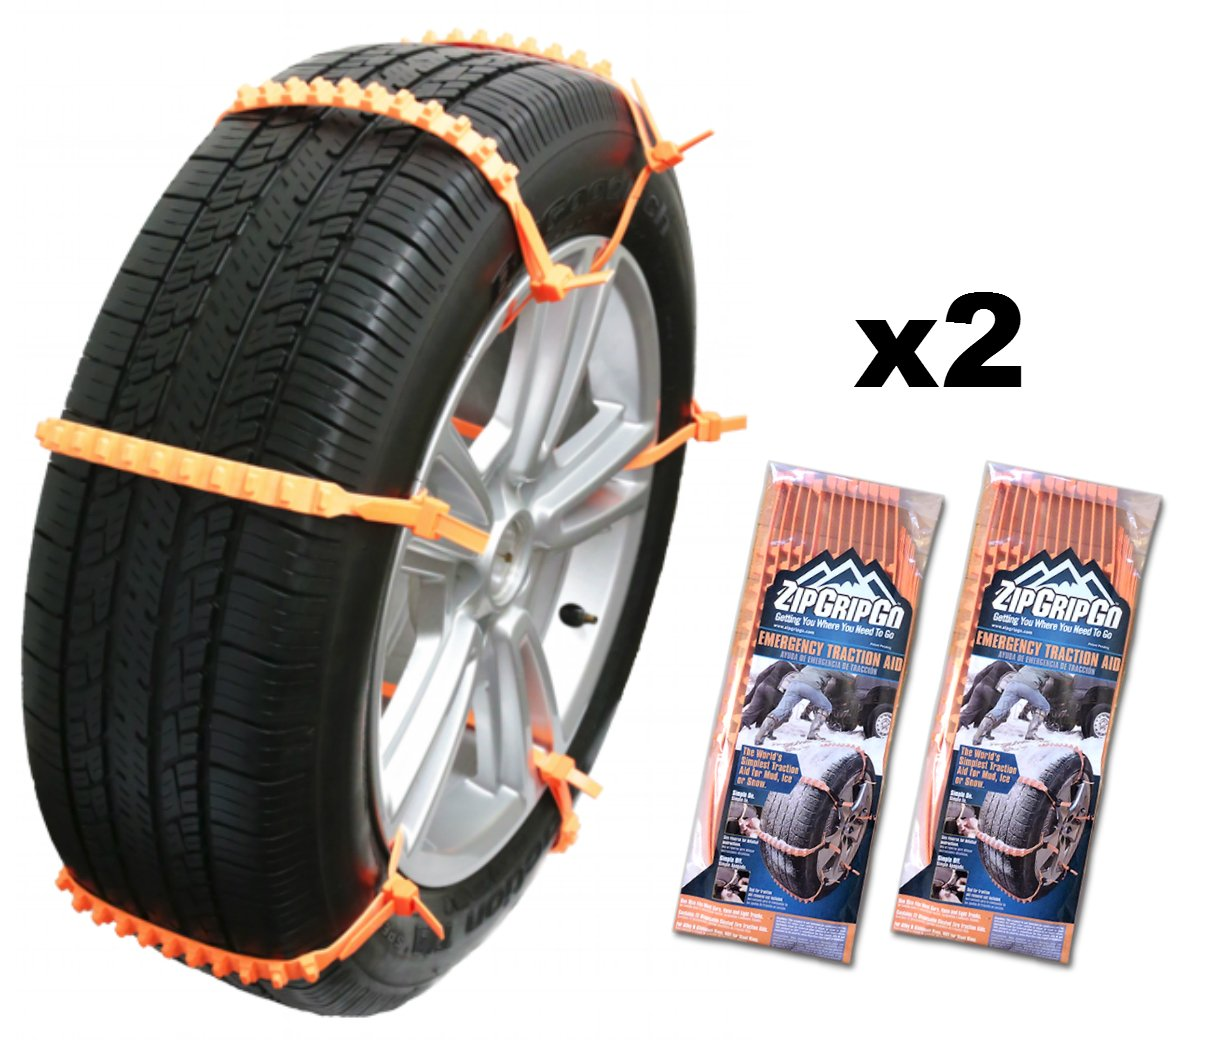 amazon com zip grip go cleated tire traction snow ice mud car